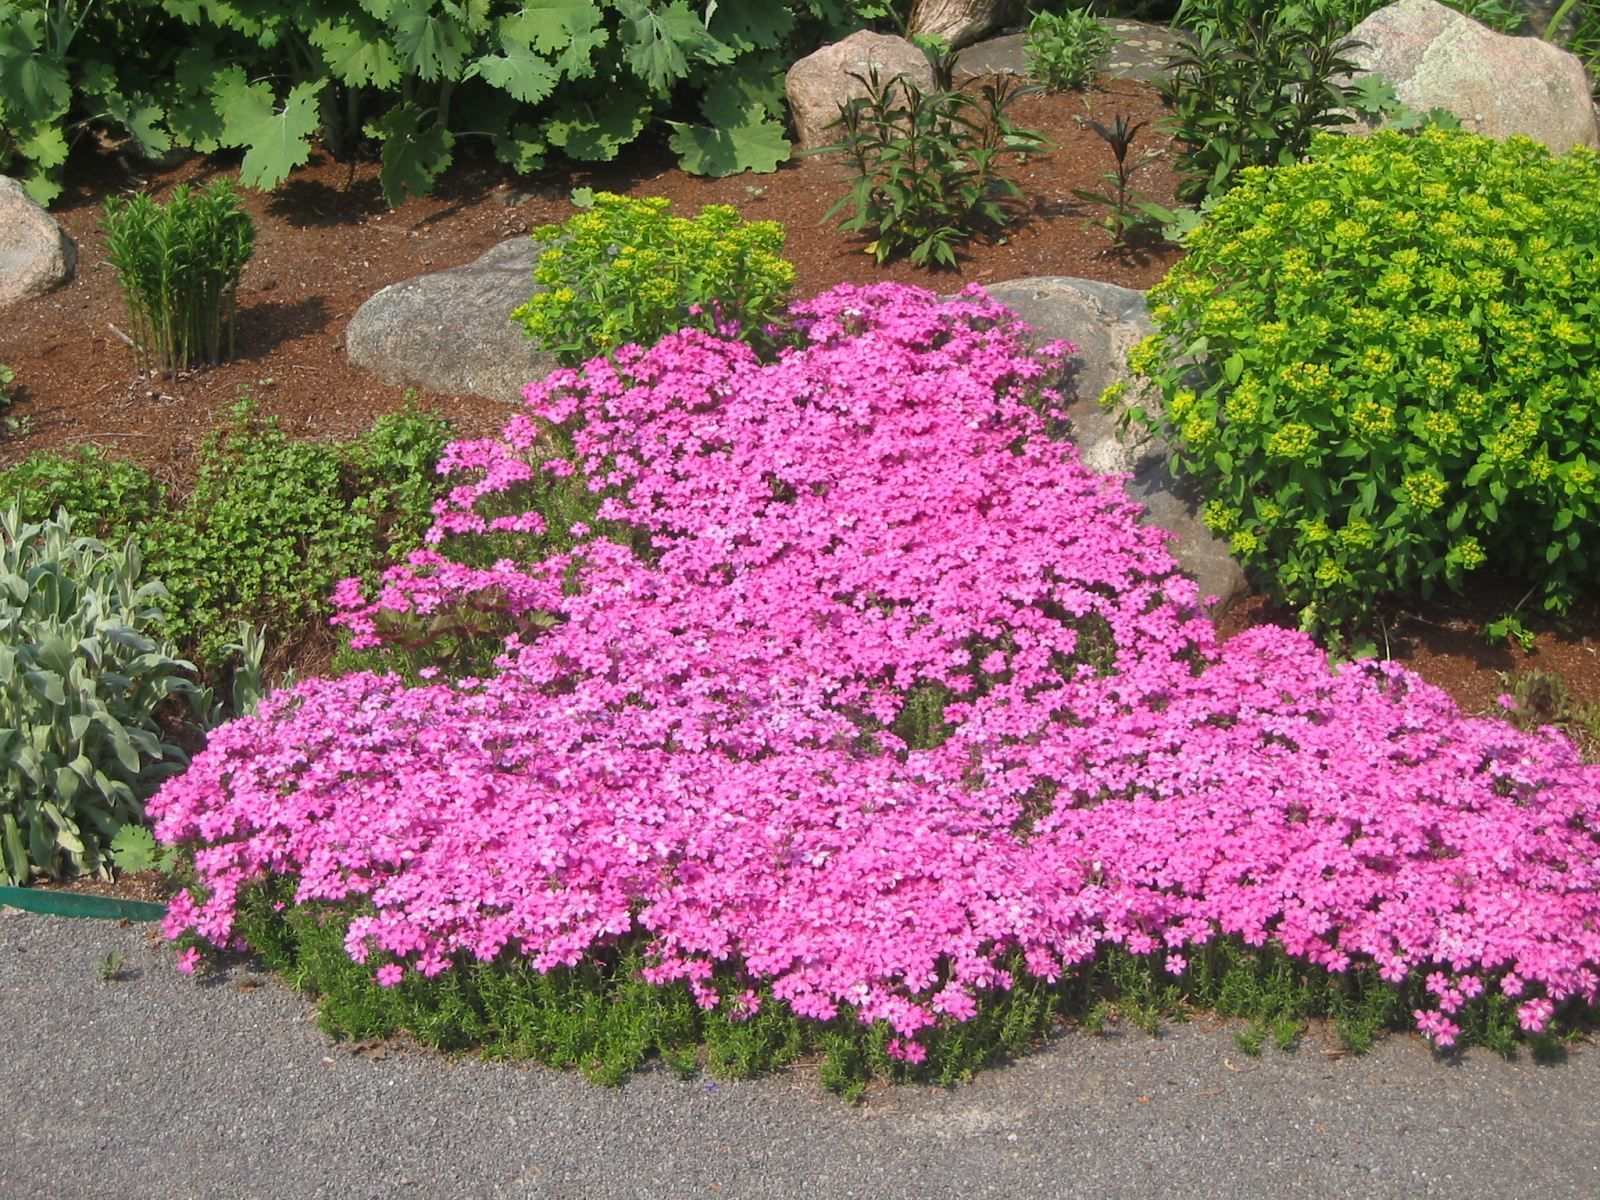 Phlox Subulata Pink A Long Lived Cold Climate Perennial It Is